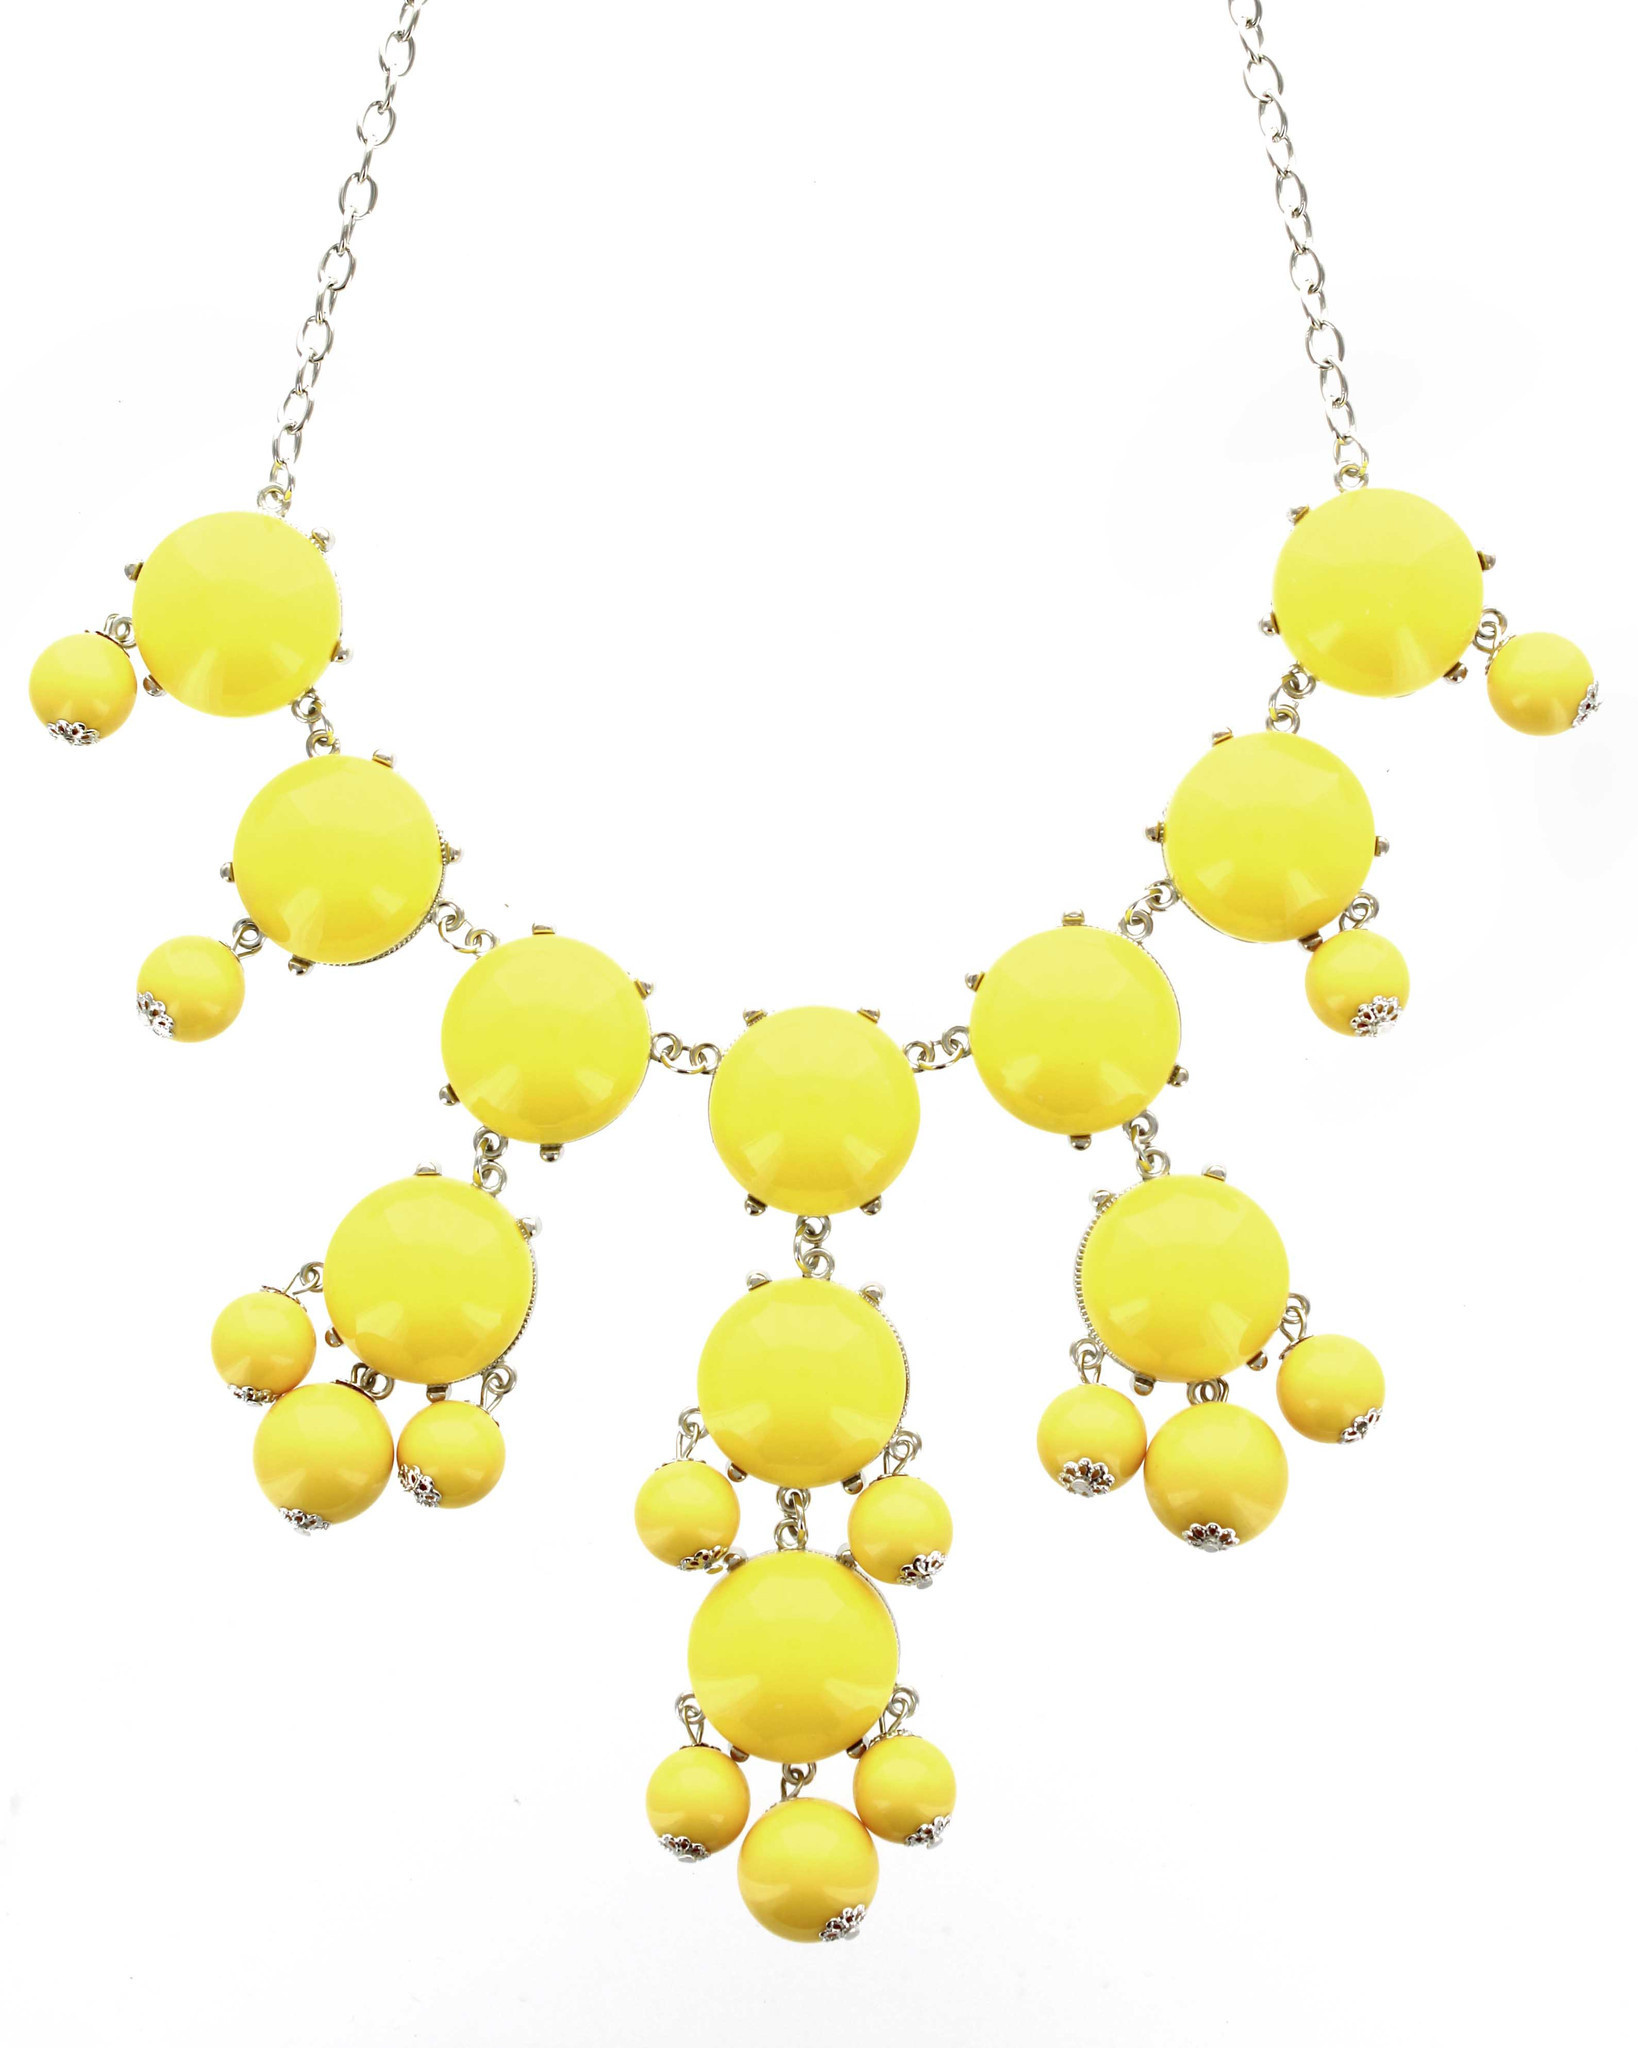 Yellow Bubble Necklace | Betsy Boo's Boutique - Free Shipping Always!